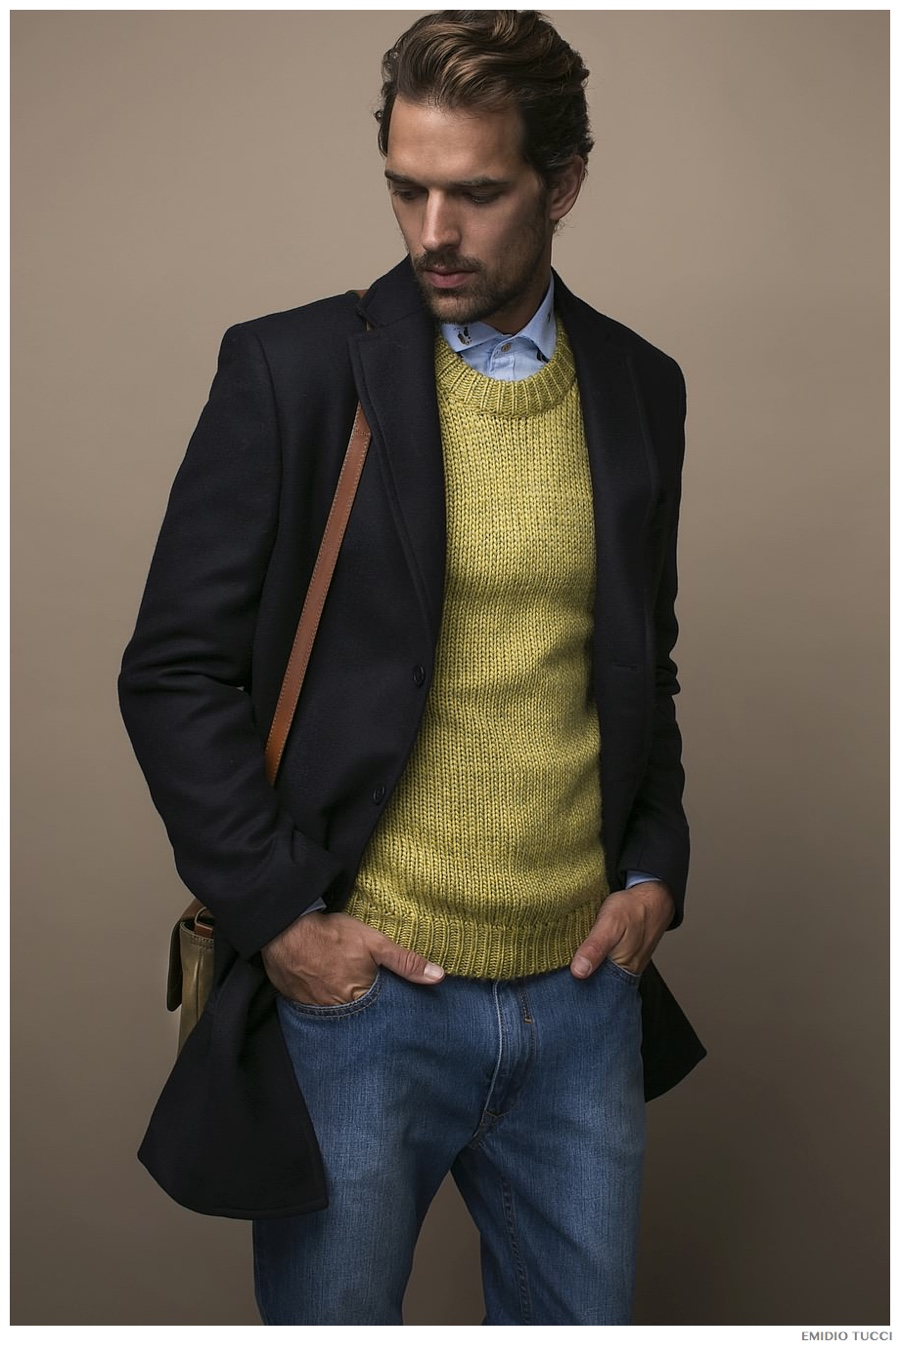 Michael Gstoettner Channels Gentleman Style for Emidio Tucci Fall/Winter 2014